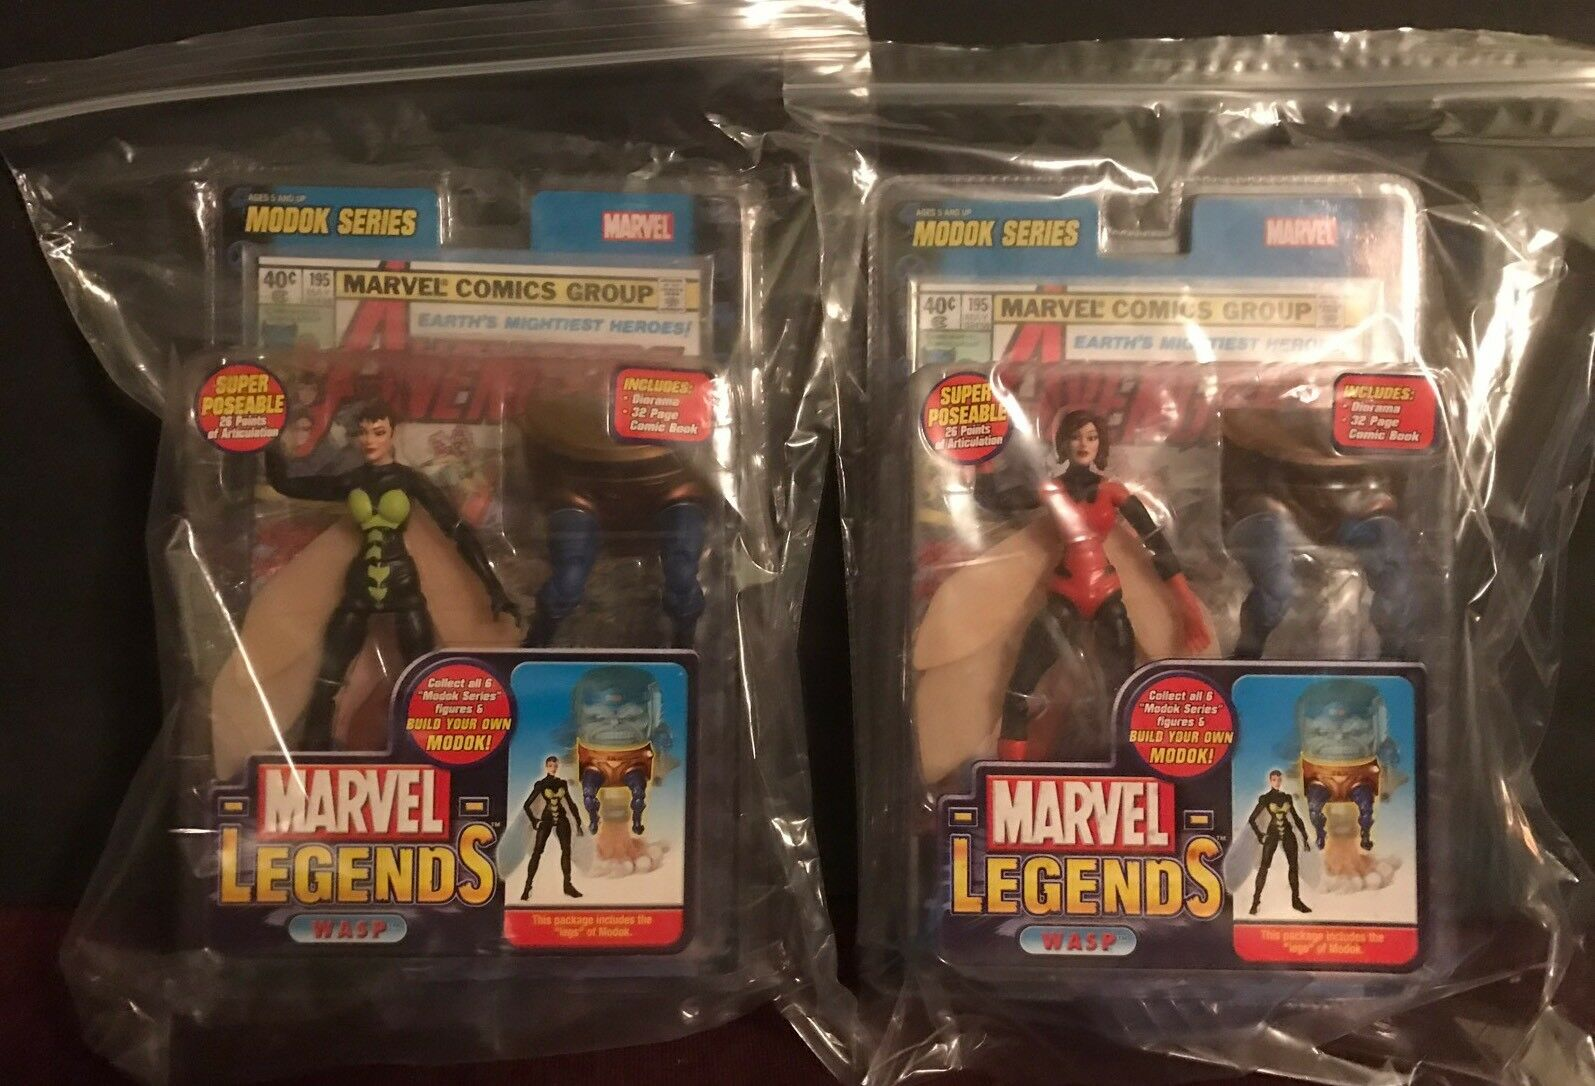 Marvel Legends WASP Lot Of (2) Variant Modok Look